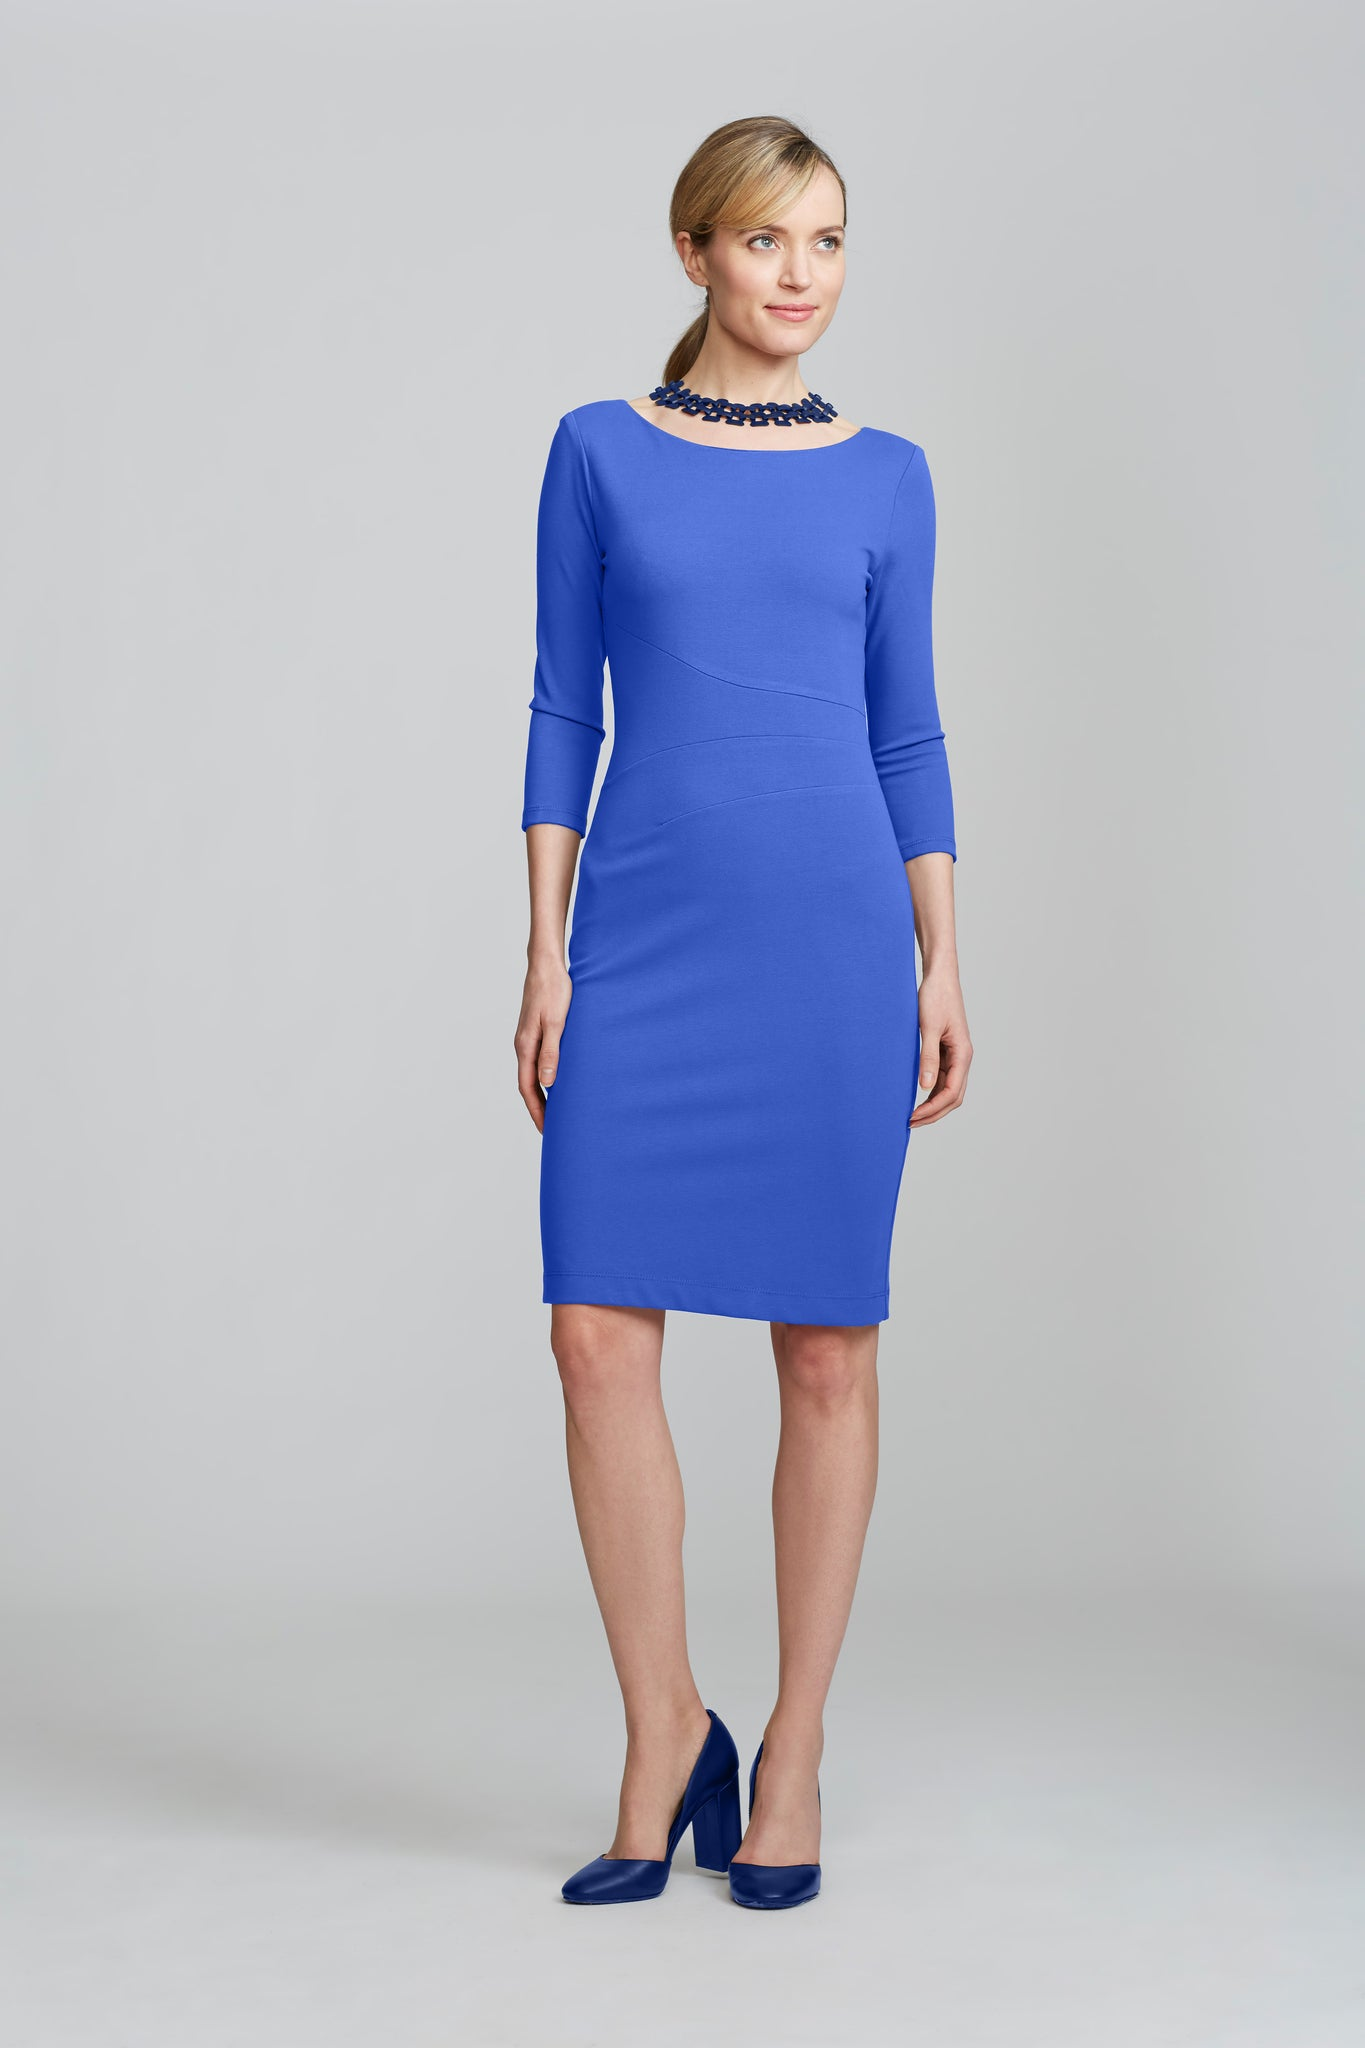 Lydia Dress - Lapis Blue PREORDER